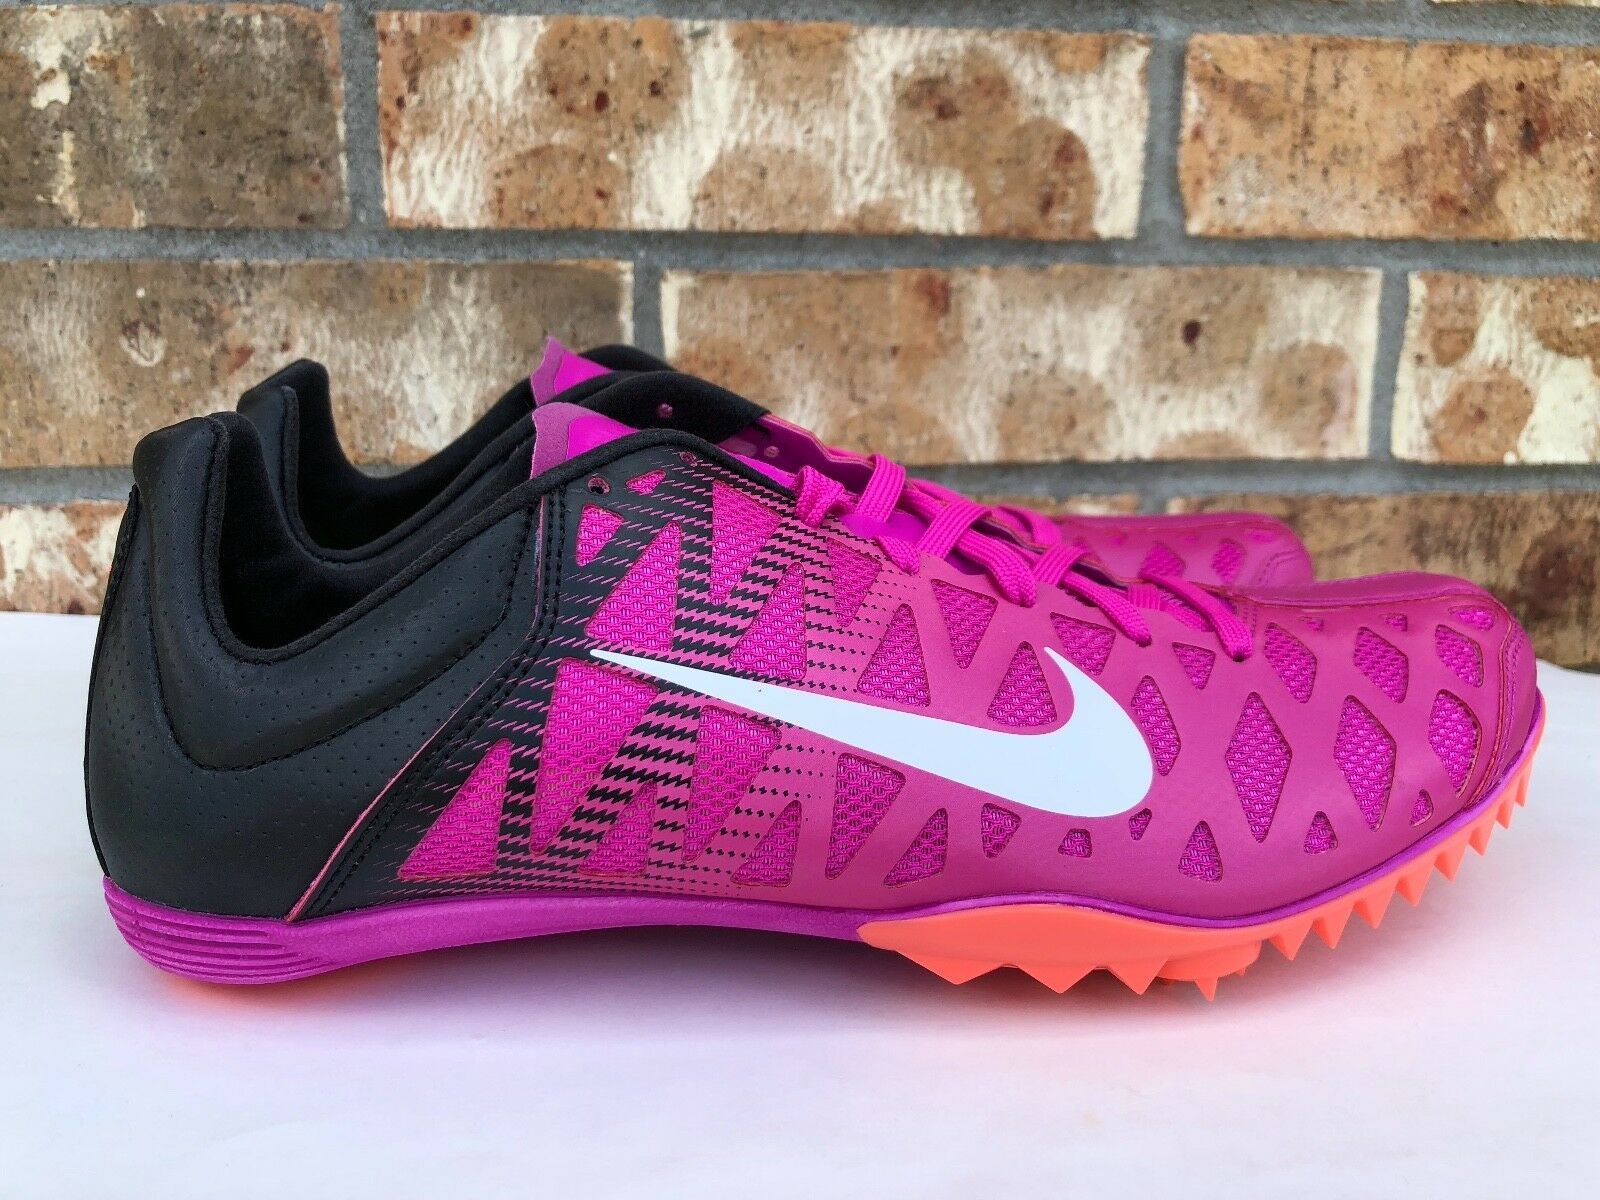 Men's Nike Zoom Maxcat 4 Track Spikes Running Pink Black Size 10 549150 601